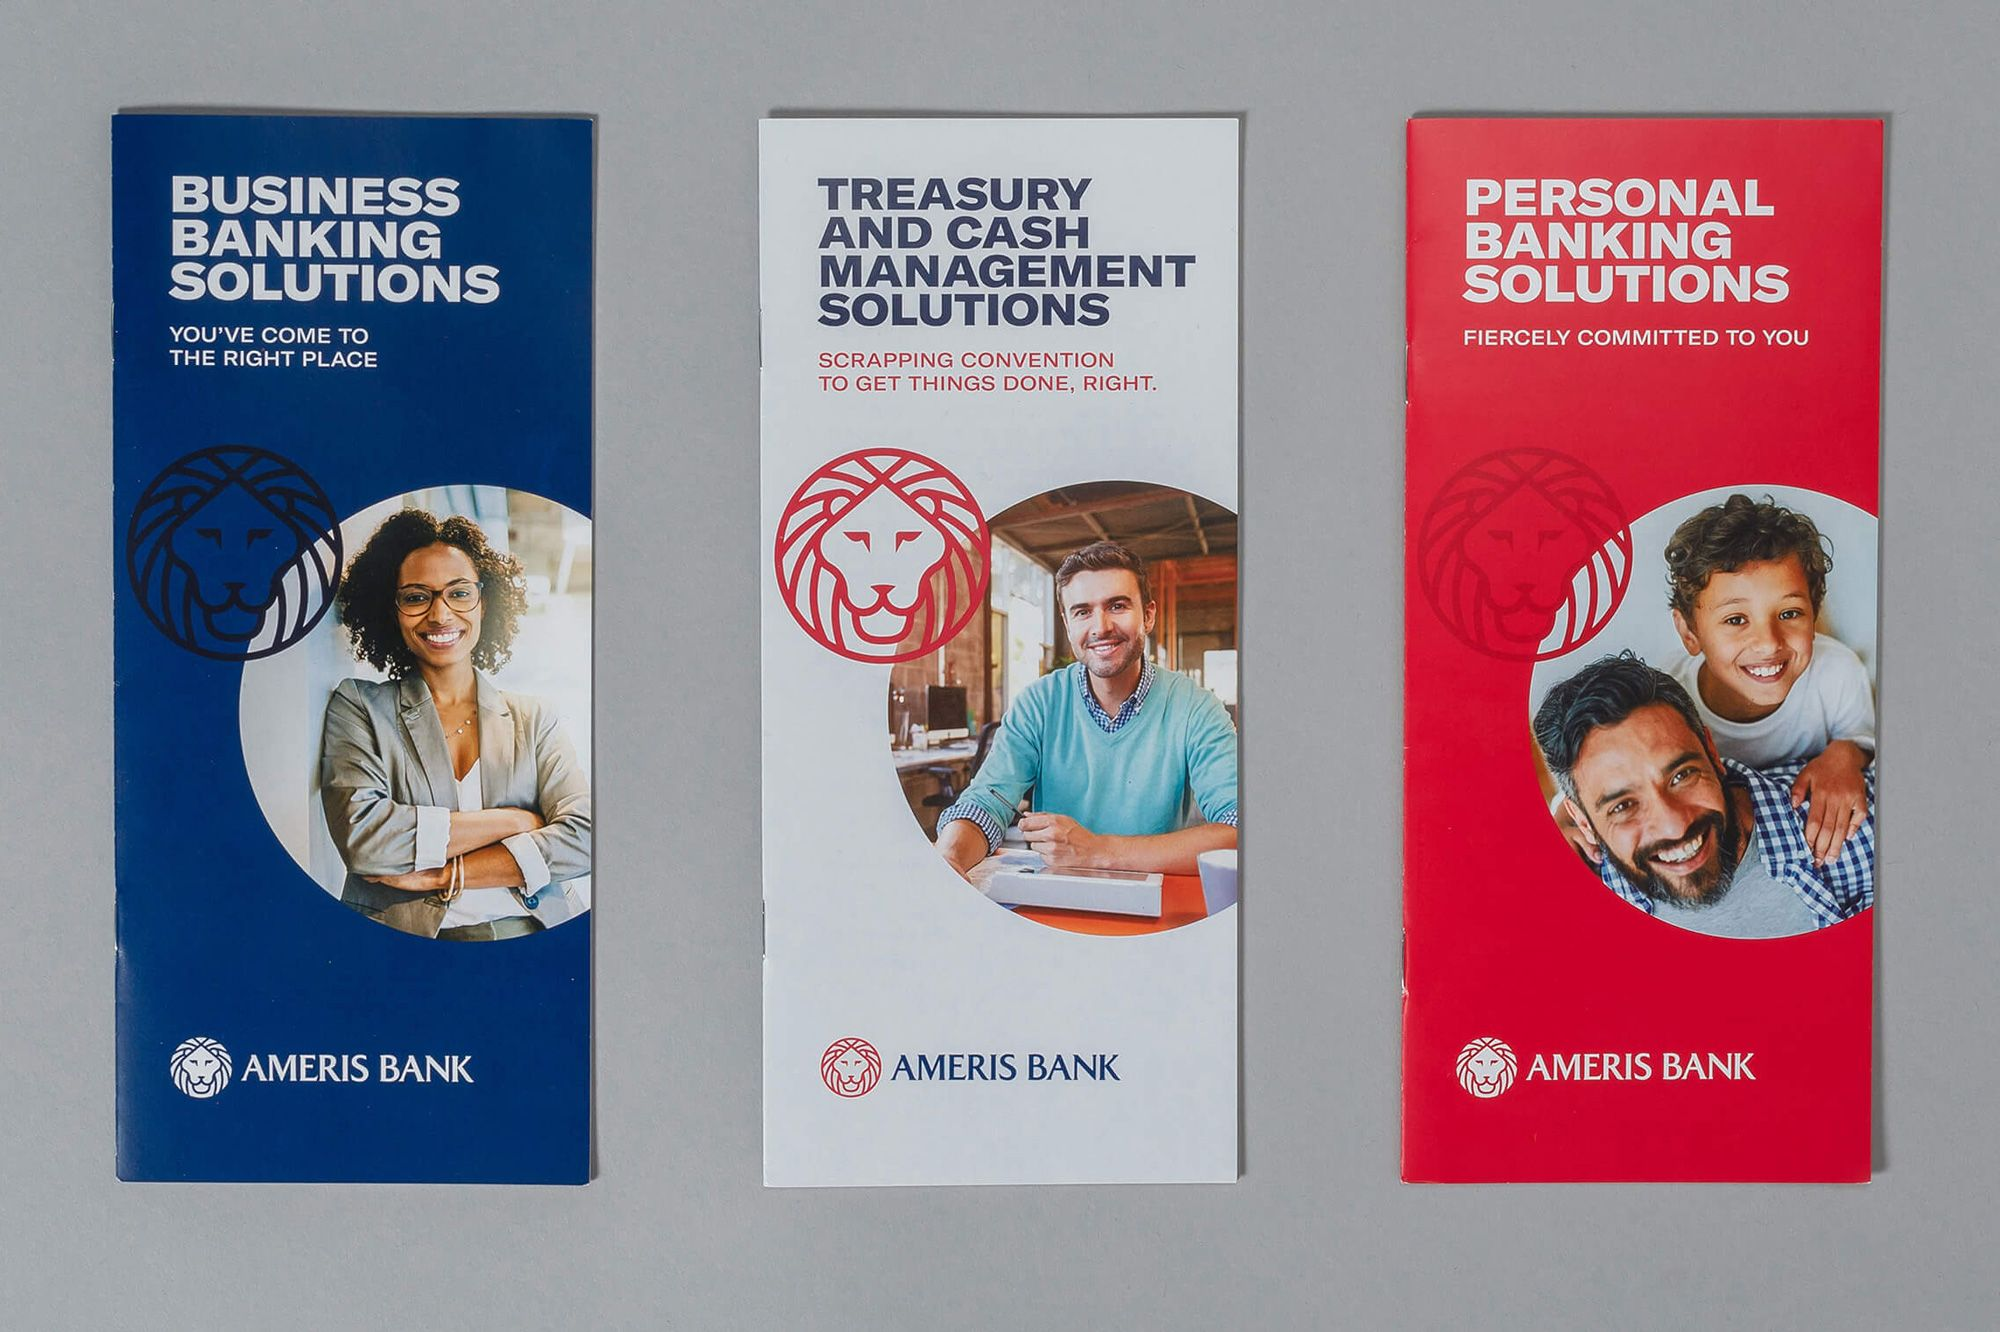 Brand New New Logo and Identity for Ameris Bank by